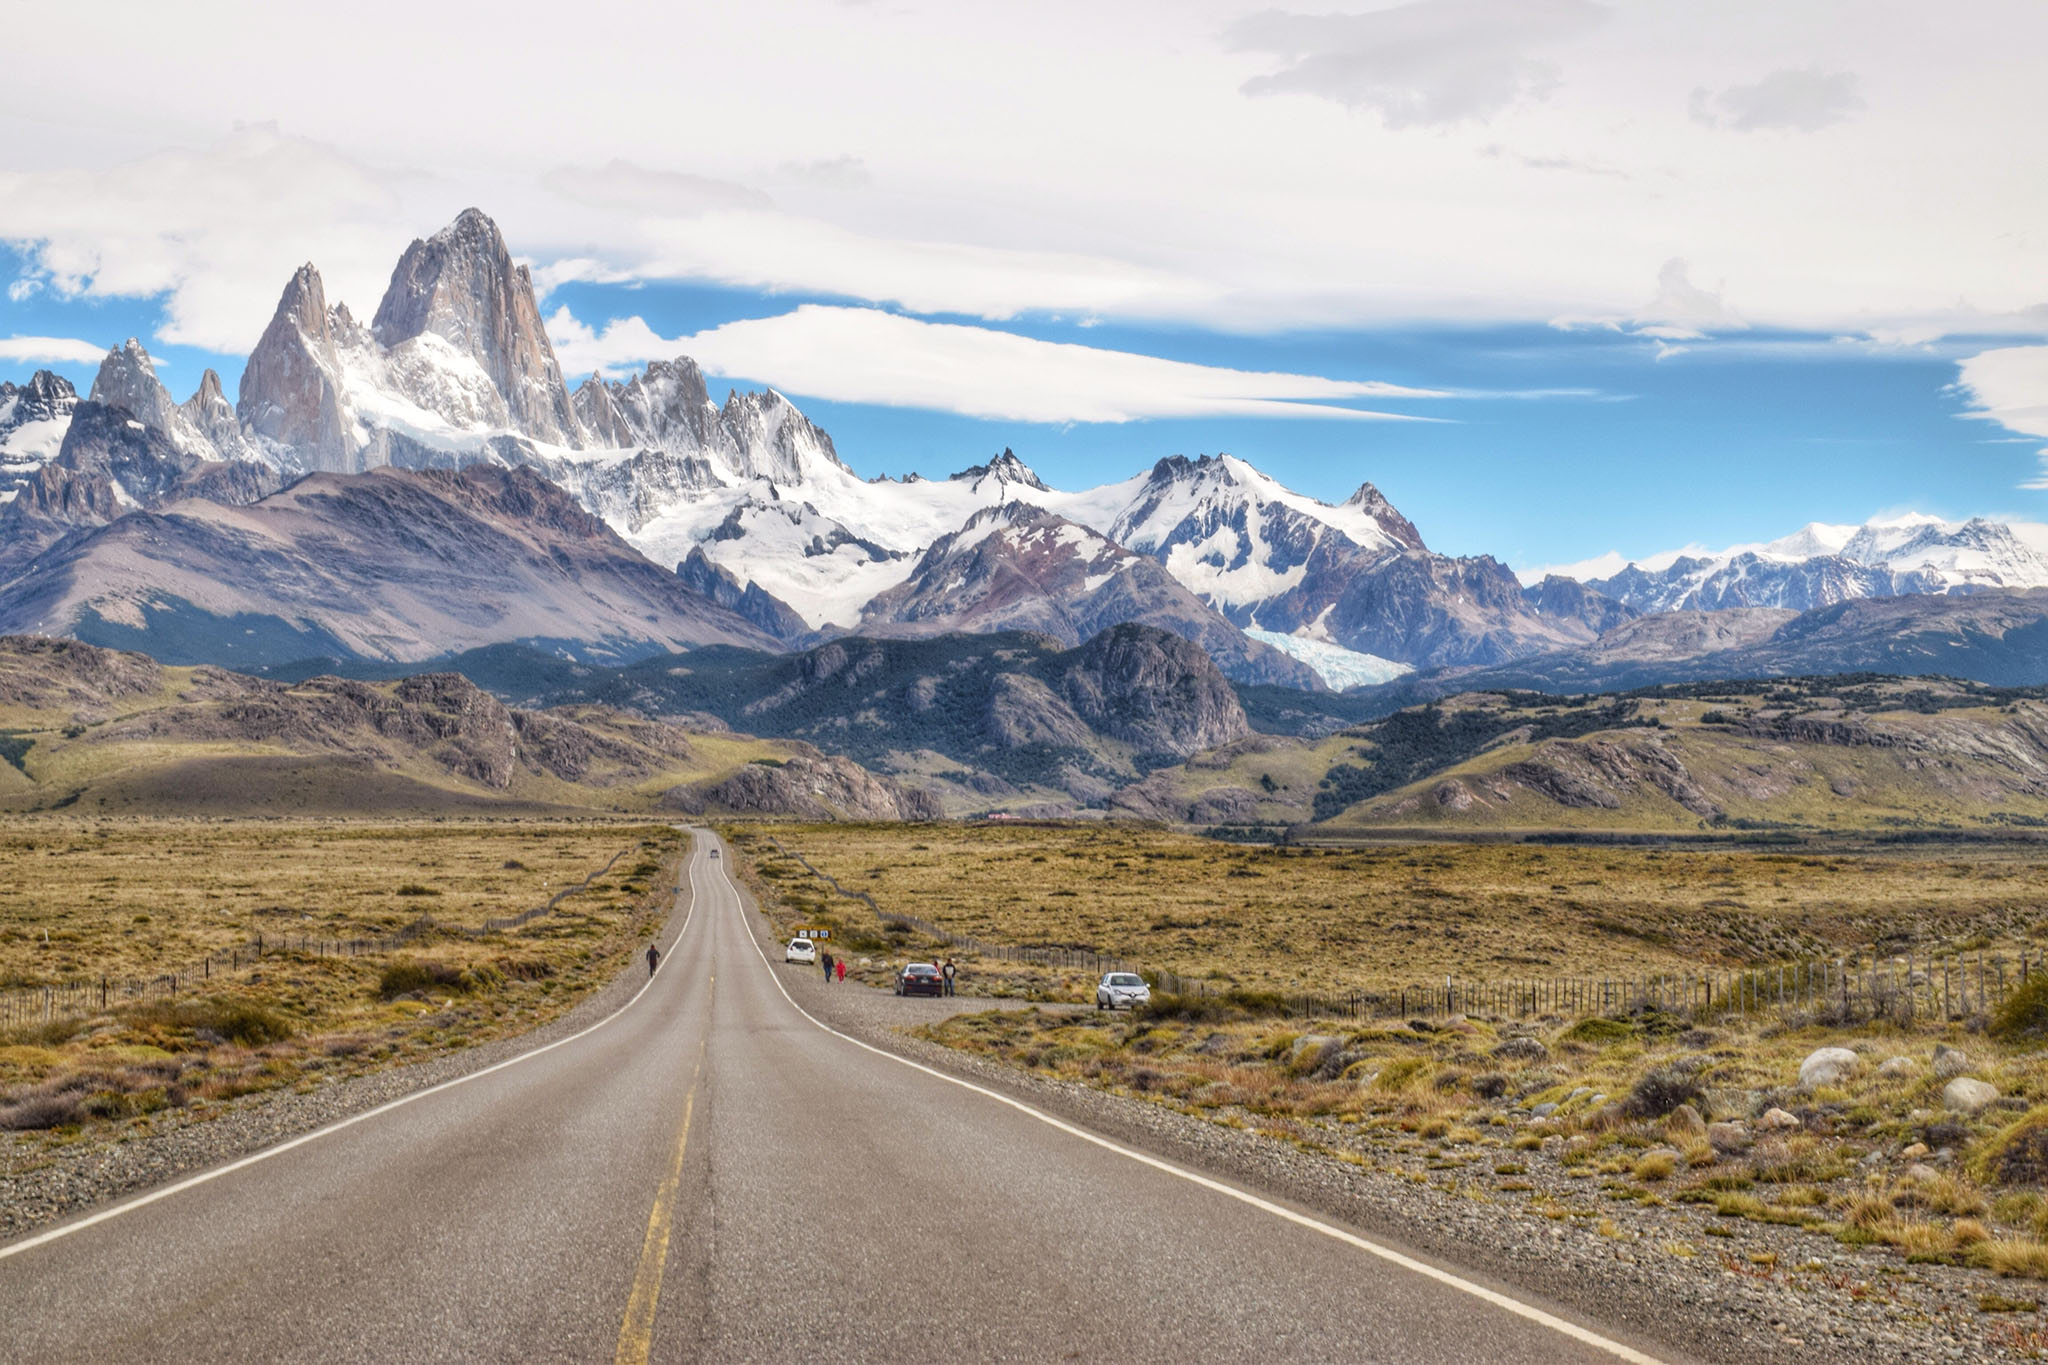 CAPODANNO IN PATAGONIA LUNGO LA MITICA RUTA 40 - National geographic expeditions